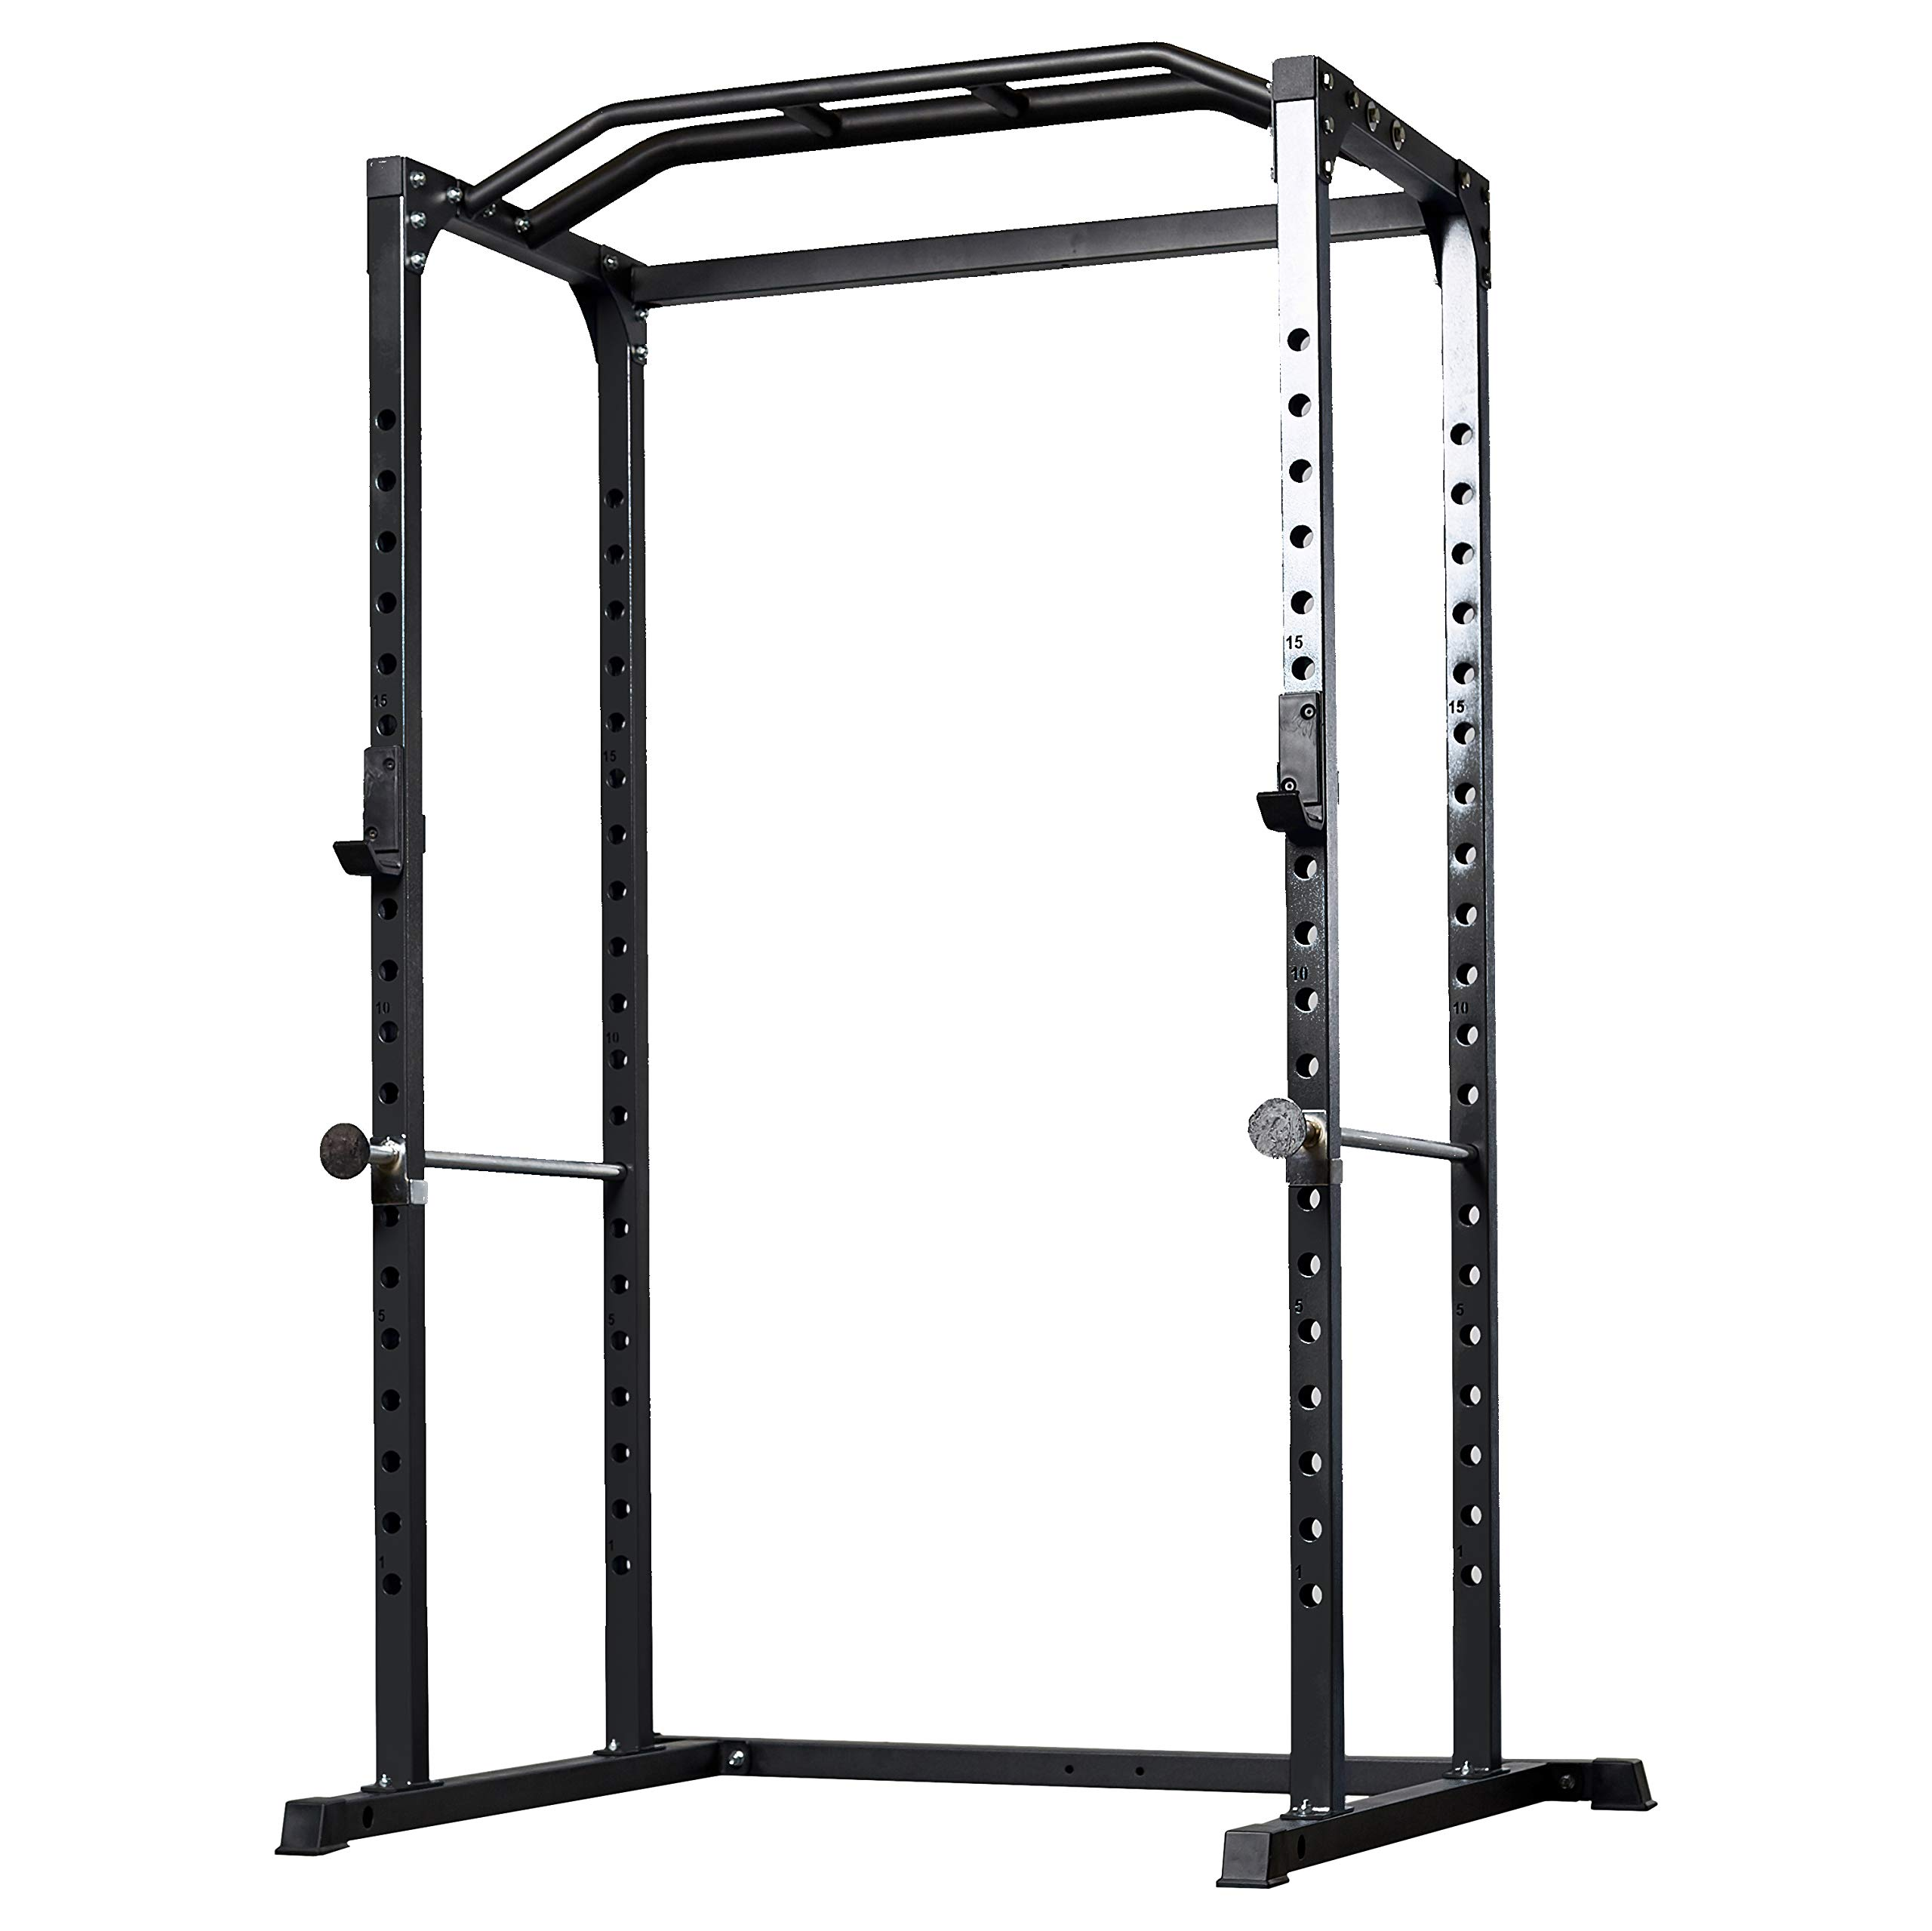 Rep PR-1100 Power Rack - 1,000 lbs Rated Lifting Cage for Weight Training (Metallic Black Power Rack, No Bench) by Rep Fitness (Image #1)